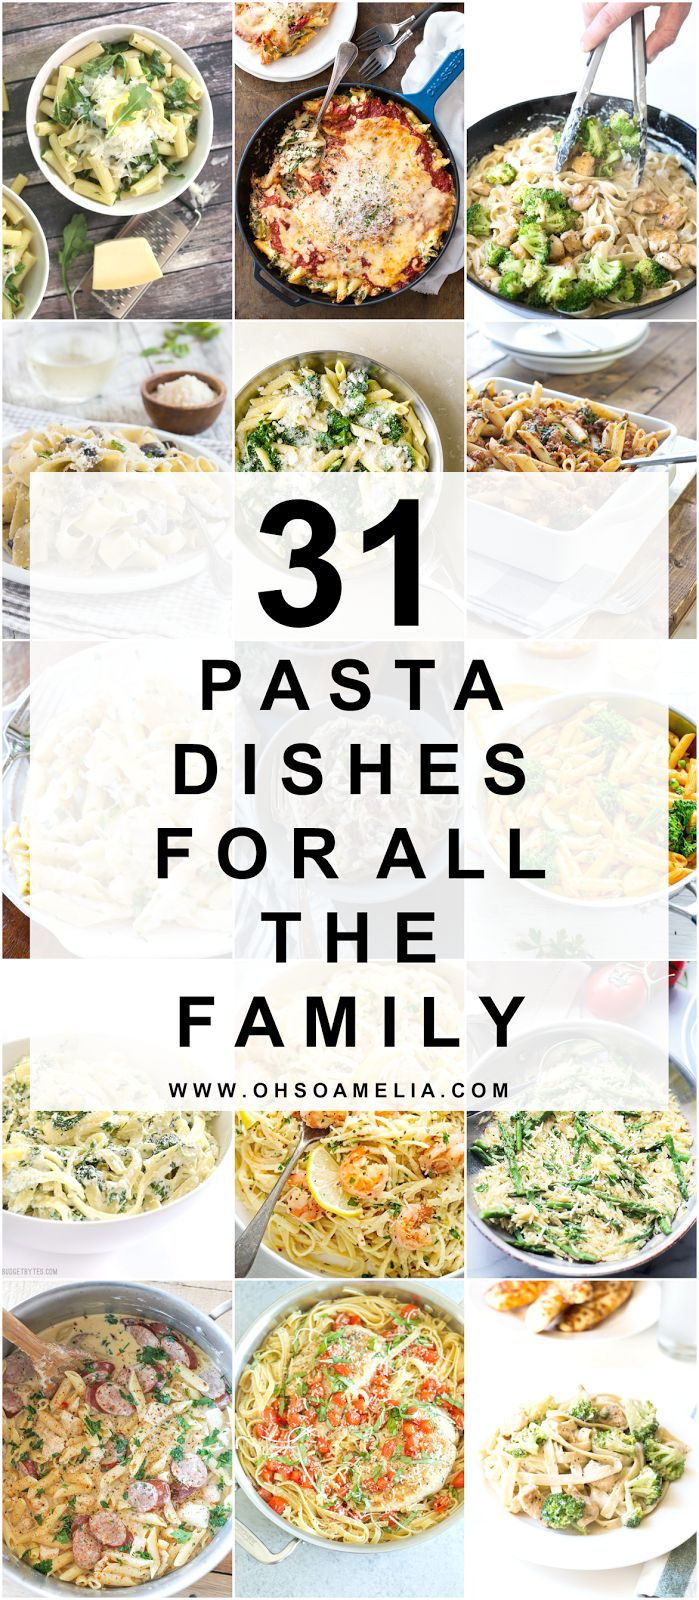 31 Pasta Dishes For All The Family - great quick and easy recipes!